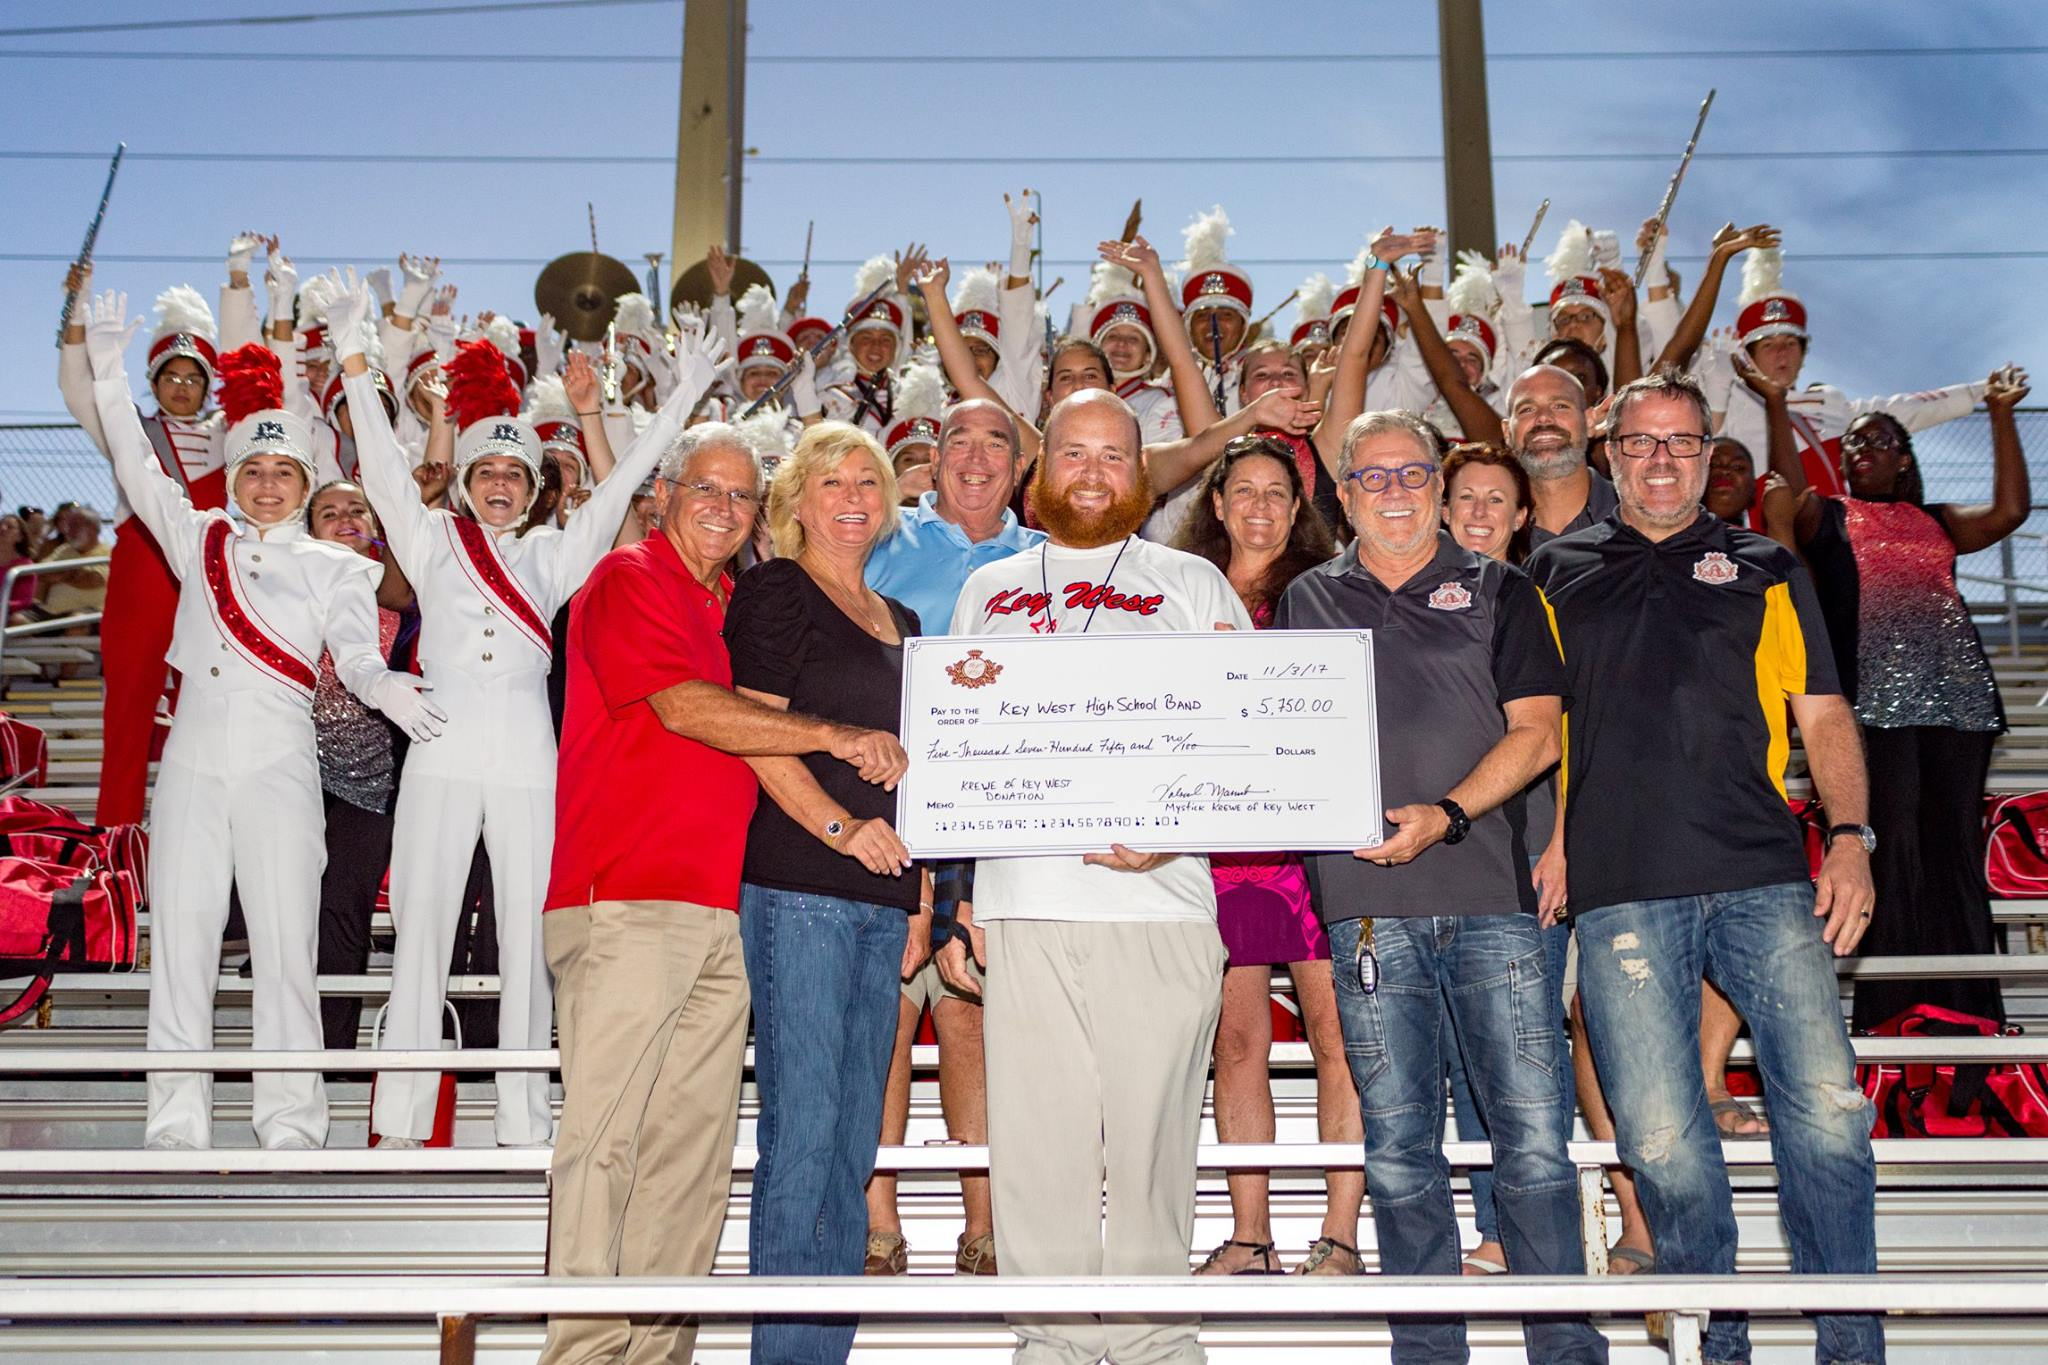 Krewe members present check for $5,750.00 to Key West High School Band